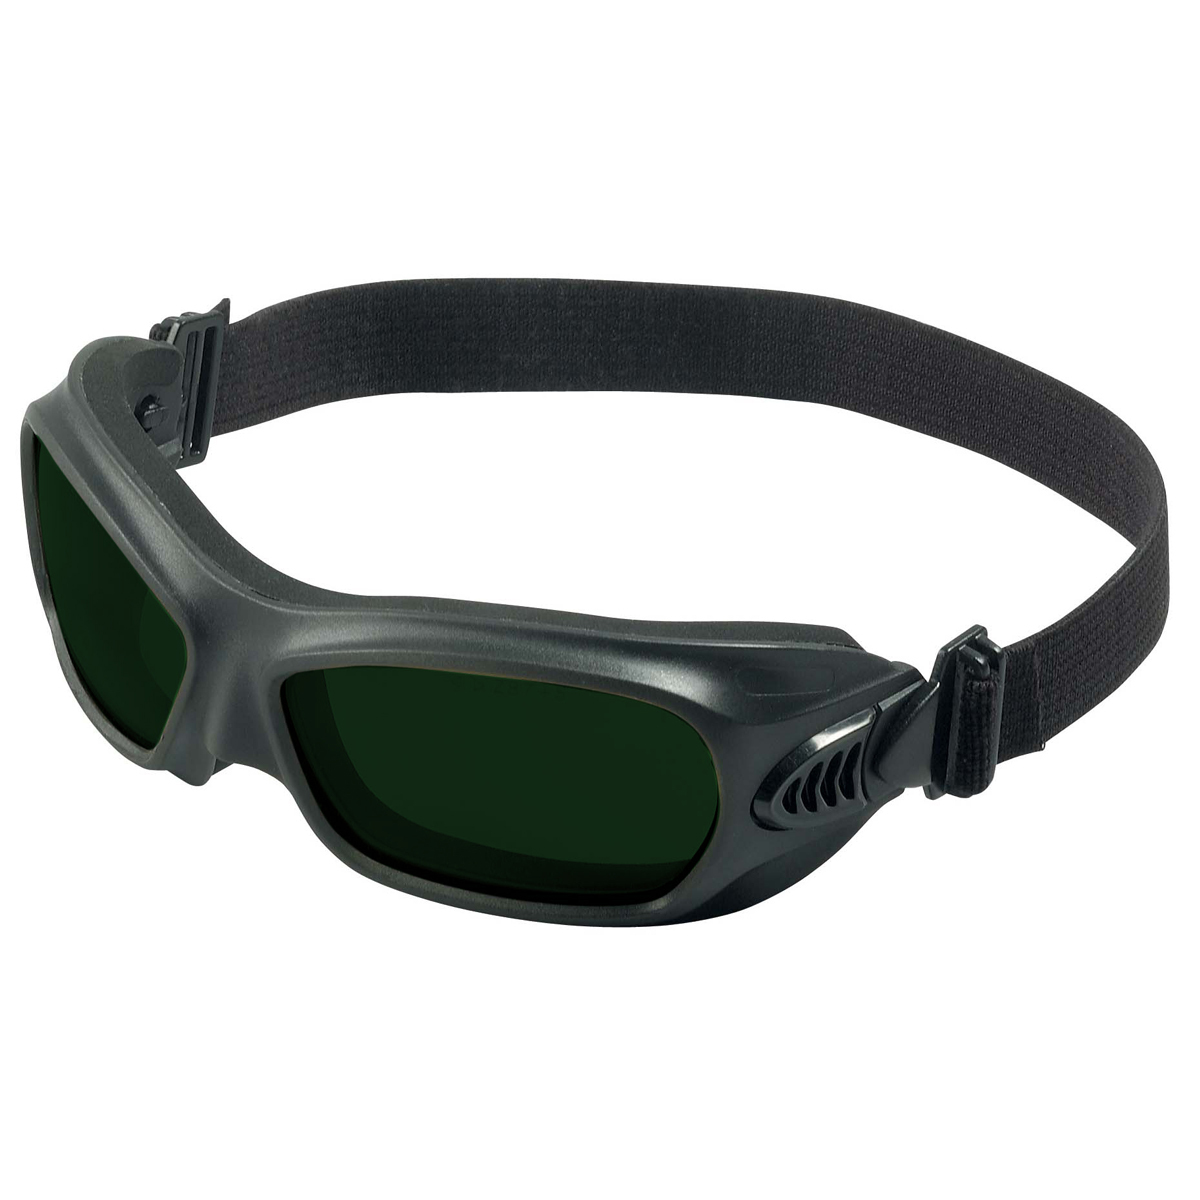 Airgas K4520529 Kimberly Clark Professional Kleenguard Wildcat Sliding Side Vent Welding Goggles With Black Flexible Wraparound Frame And Iruv Shade 5 Anti Fog Lens Lead Time For This Product May Be Longer